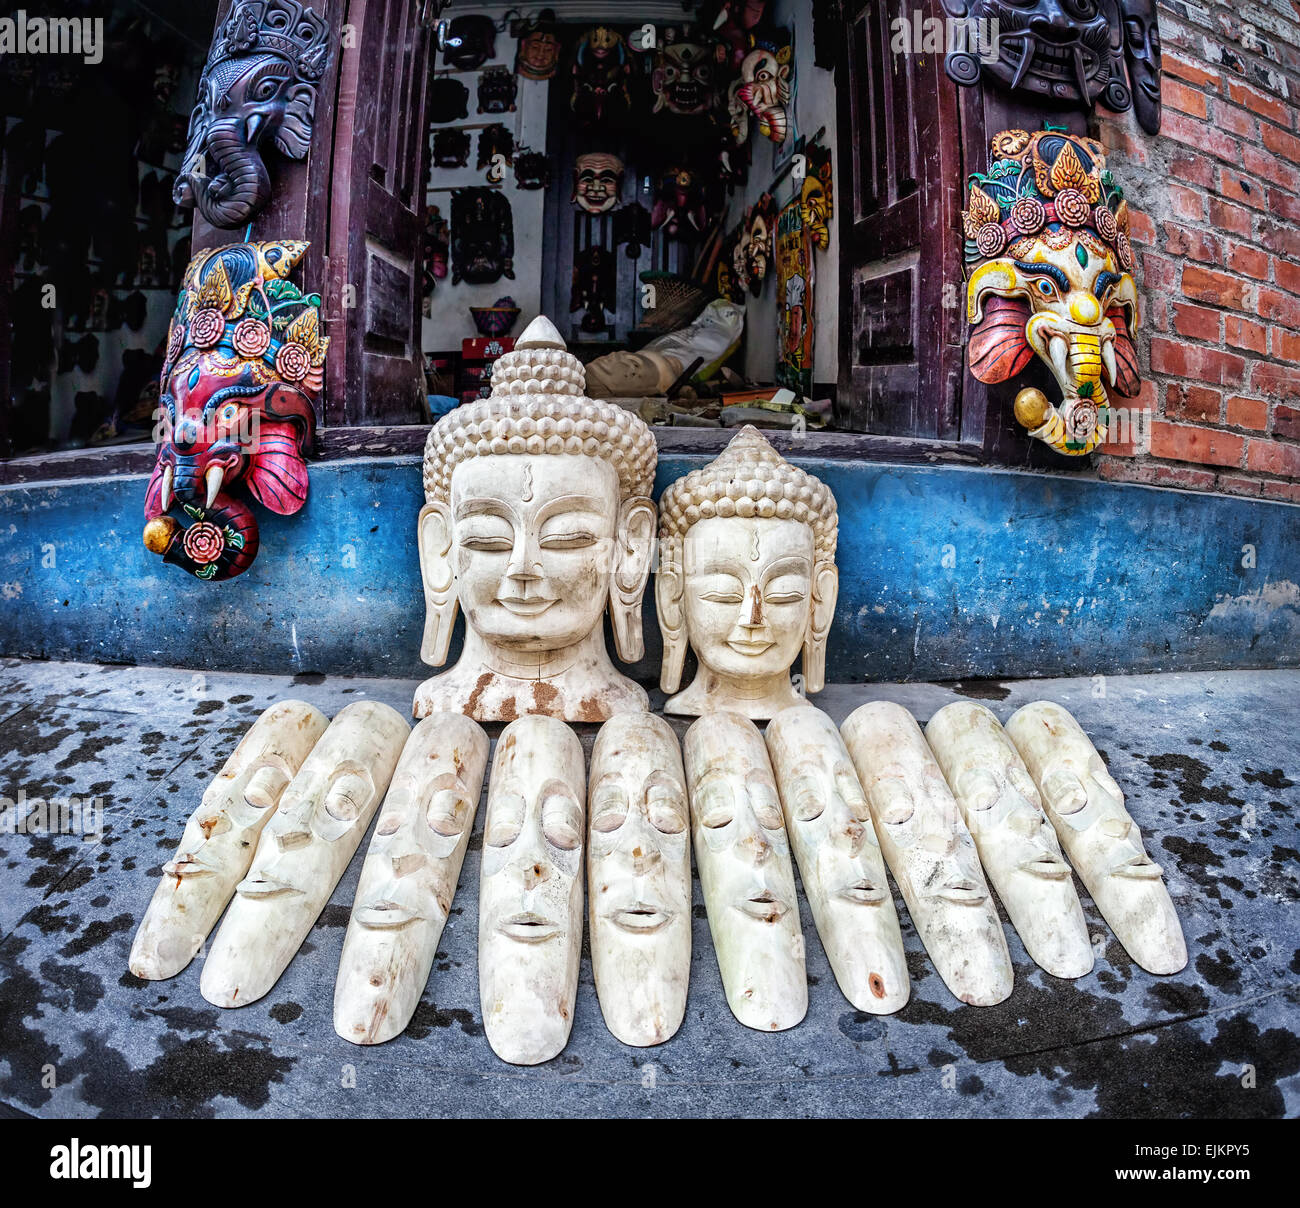 Buddha and Ganesh heads and other souvenir masks in the shop of Patan, Kathmandu valley, Nepal - Stock Image